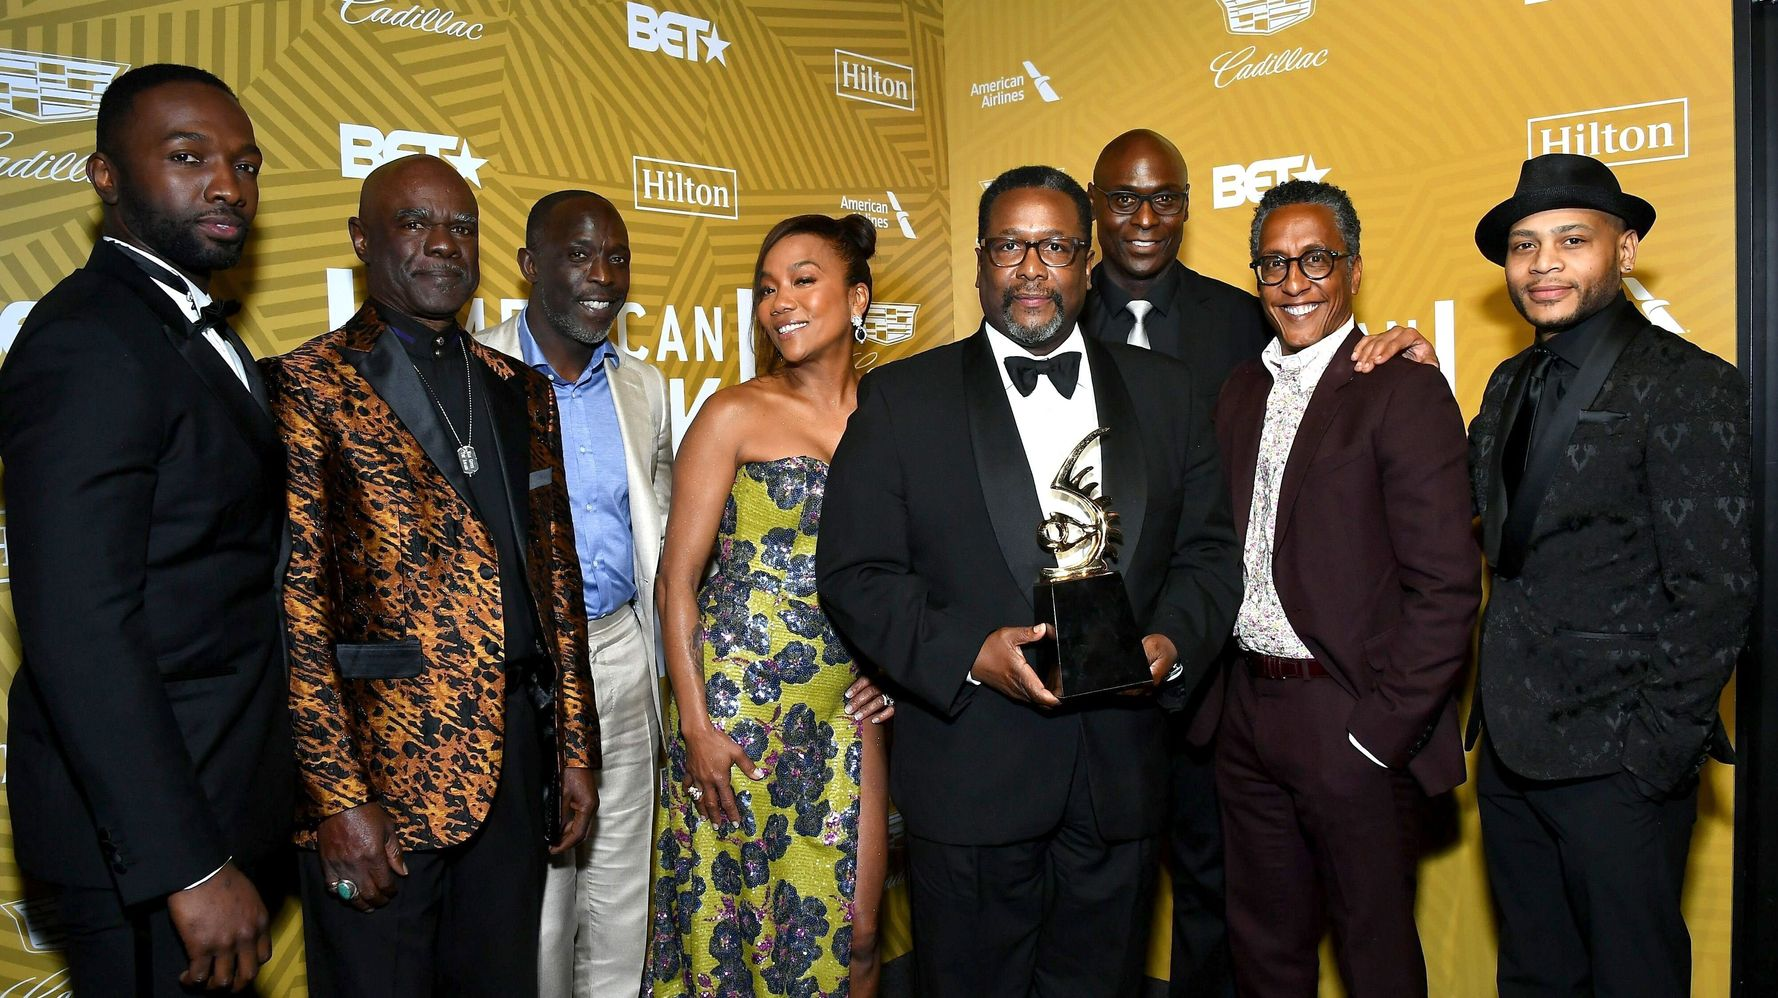 Westlake Legal Group 5e555110260000630cb5fb52 'The Wire' Honored With 'Classic TV' Award By American Black Film Festival